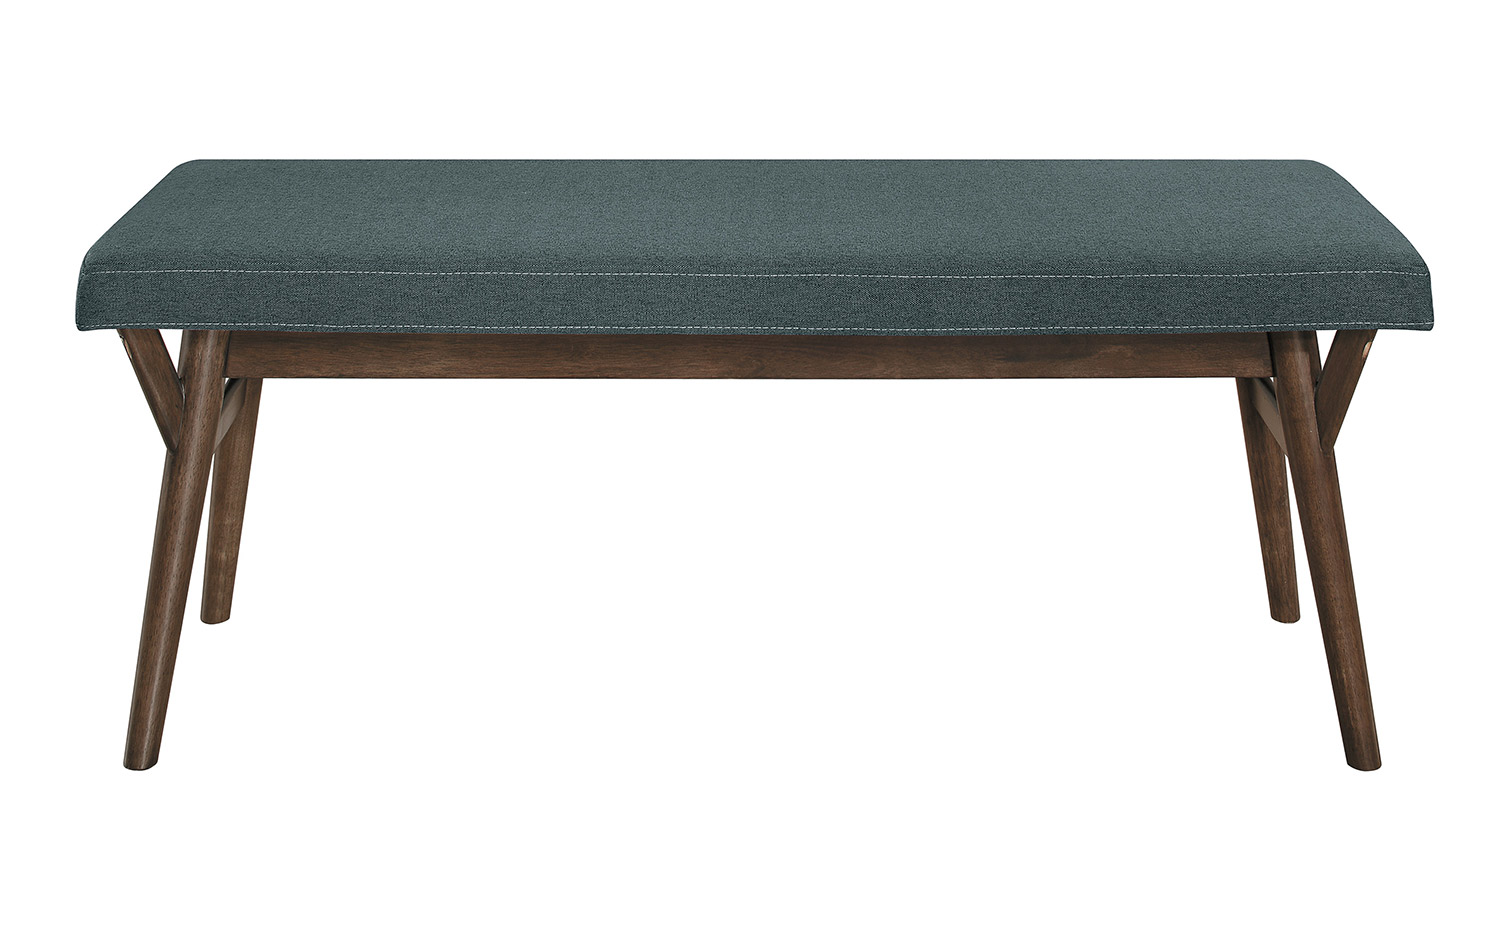 Homelegance Stratus Bench - Dark